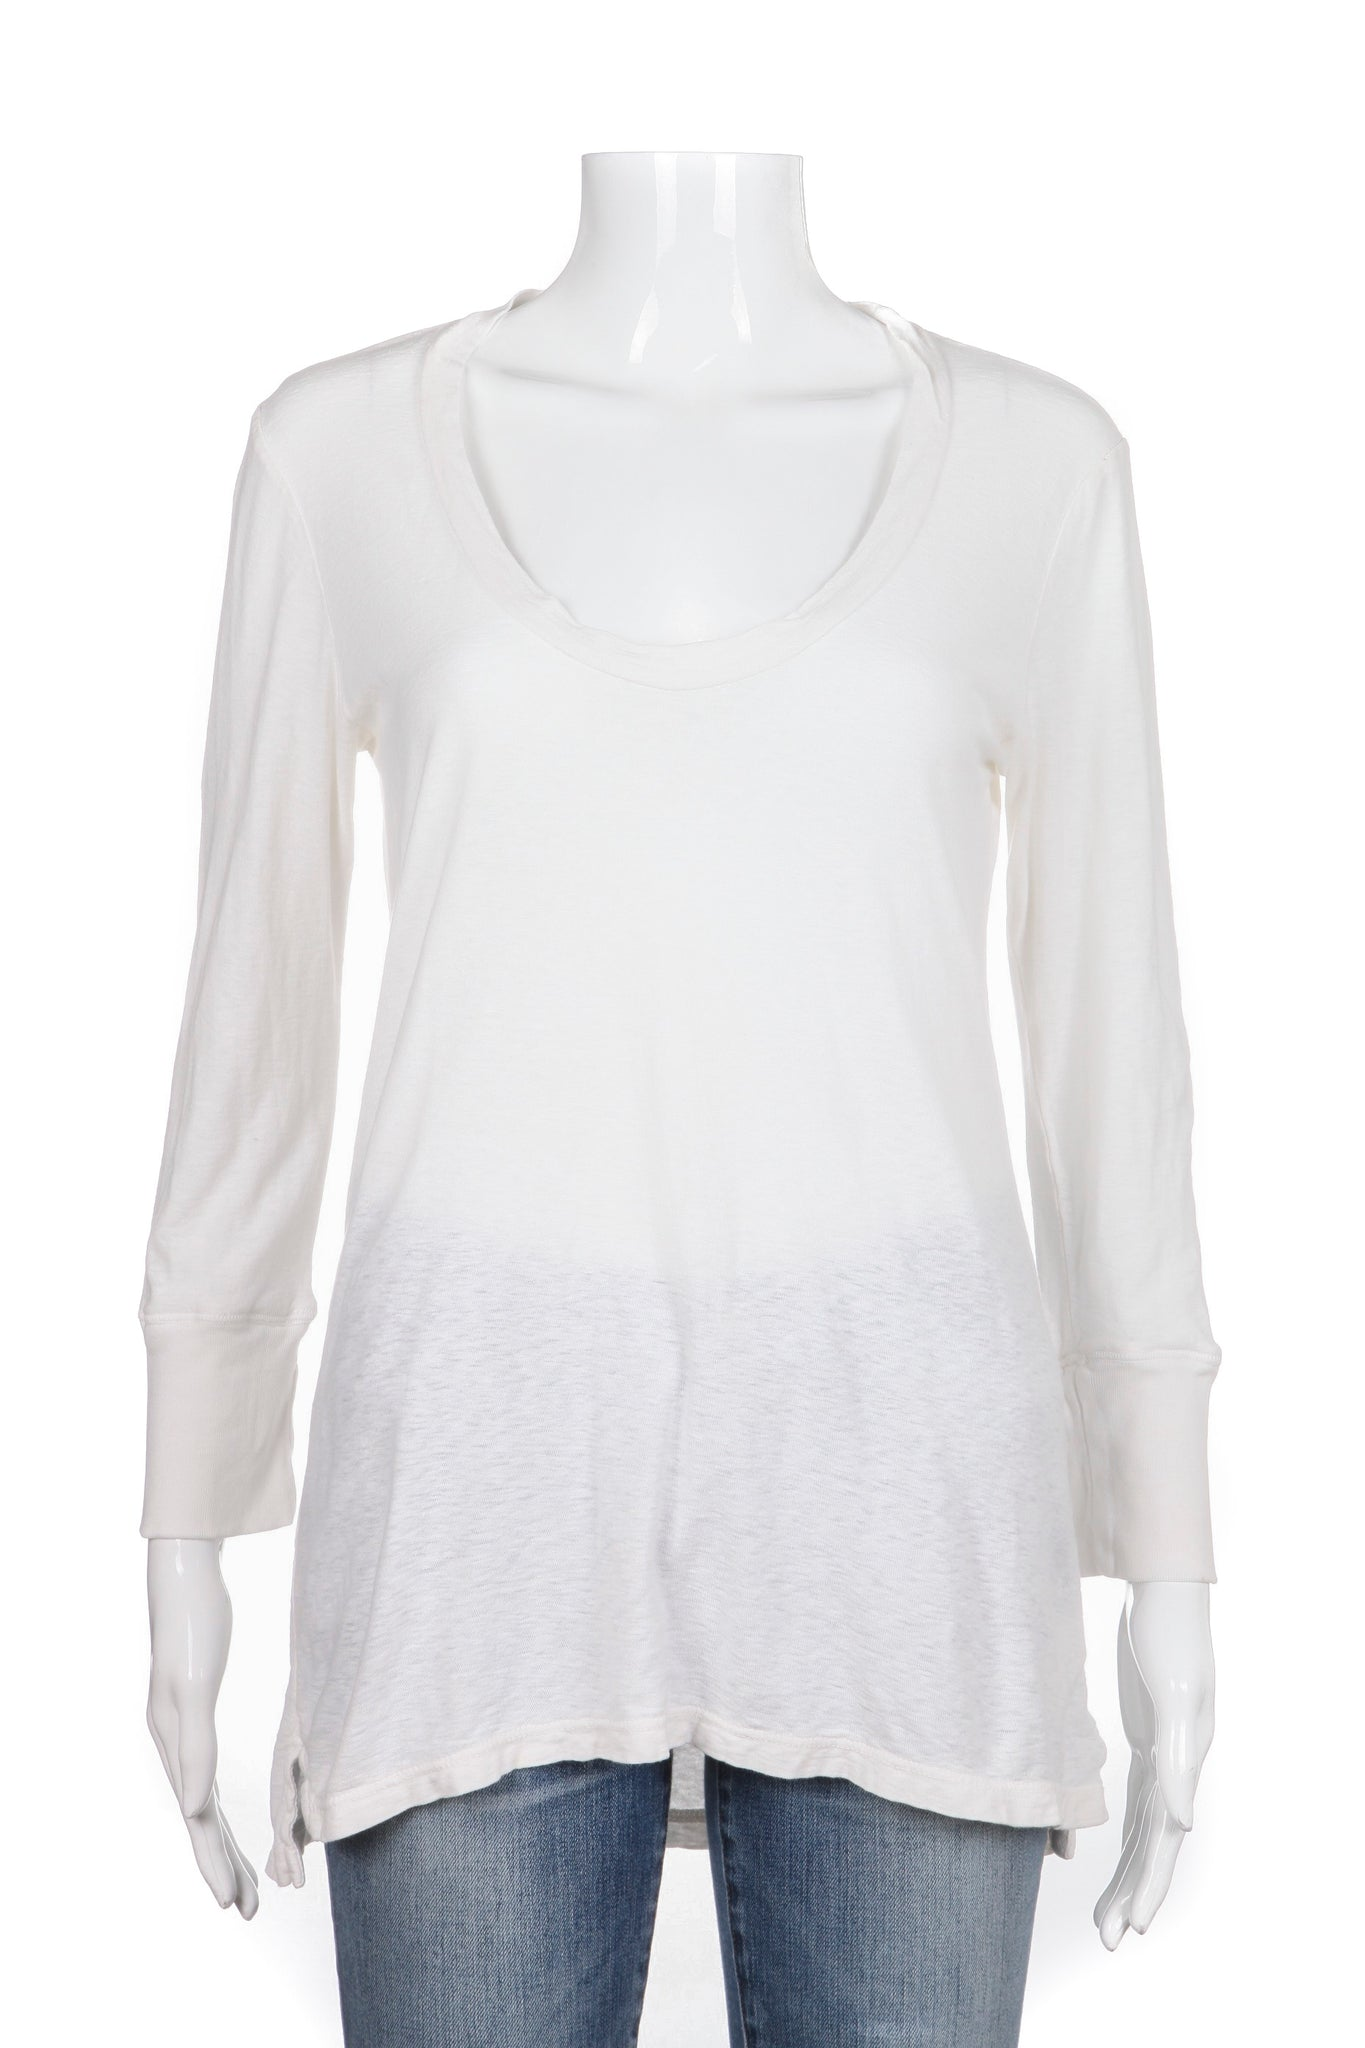 JAMES PERSE Standard Tee Oversize 3/4 Sleeve White